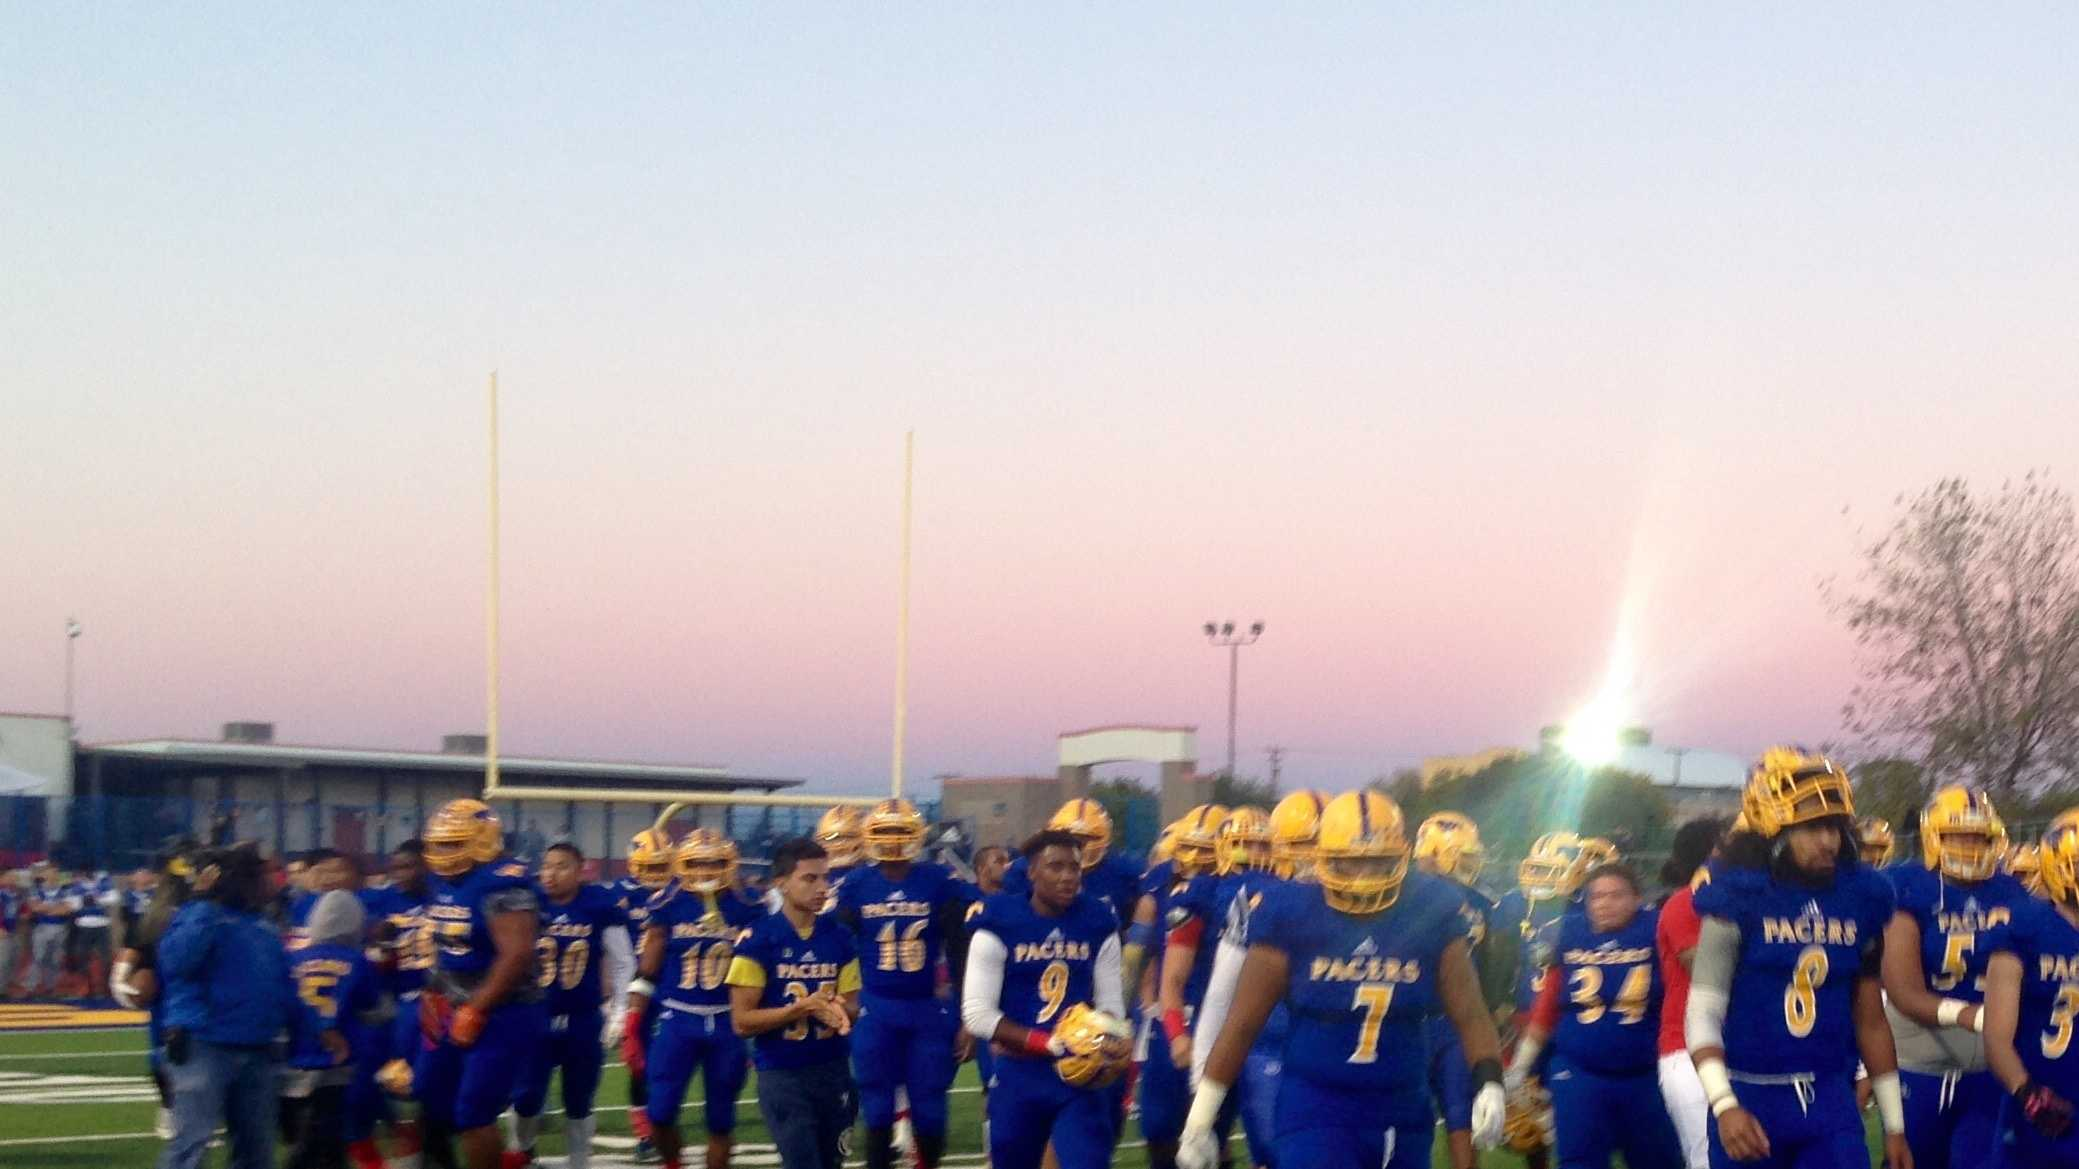 Monday night was an emotional return to the football field for the Grant Union High School Pacers, as the school mourned the loss of one of its students who was shot and killed Friday night.